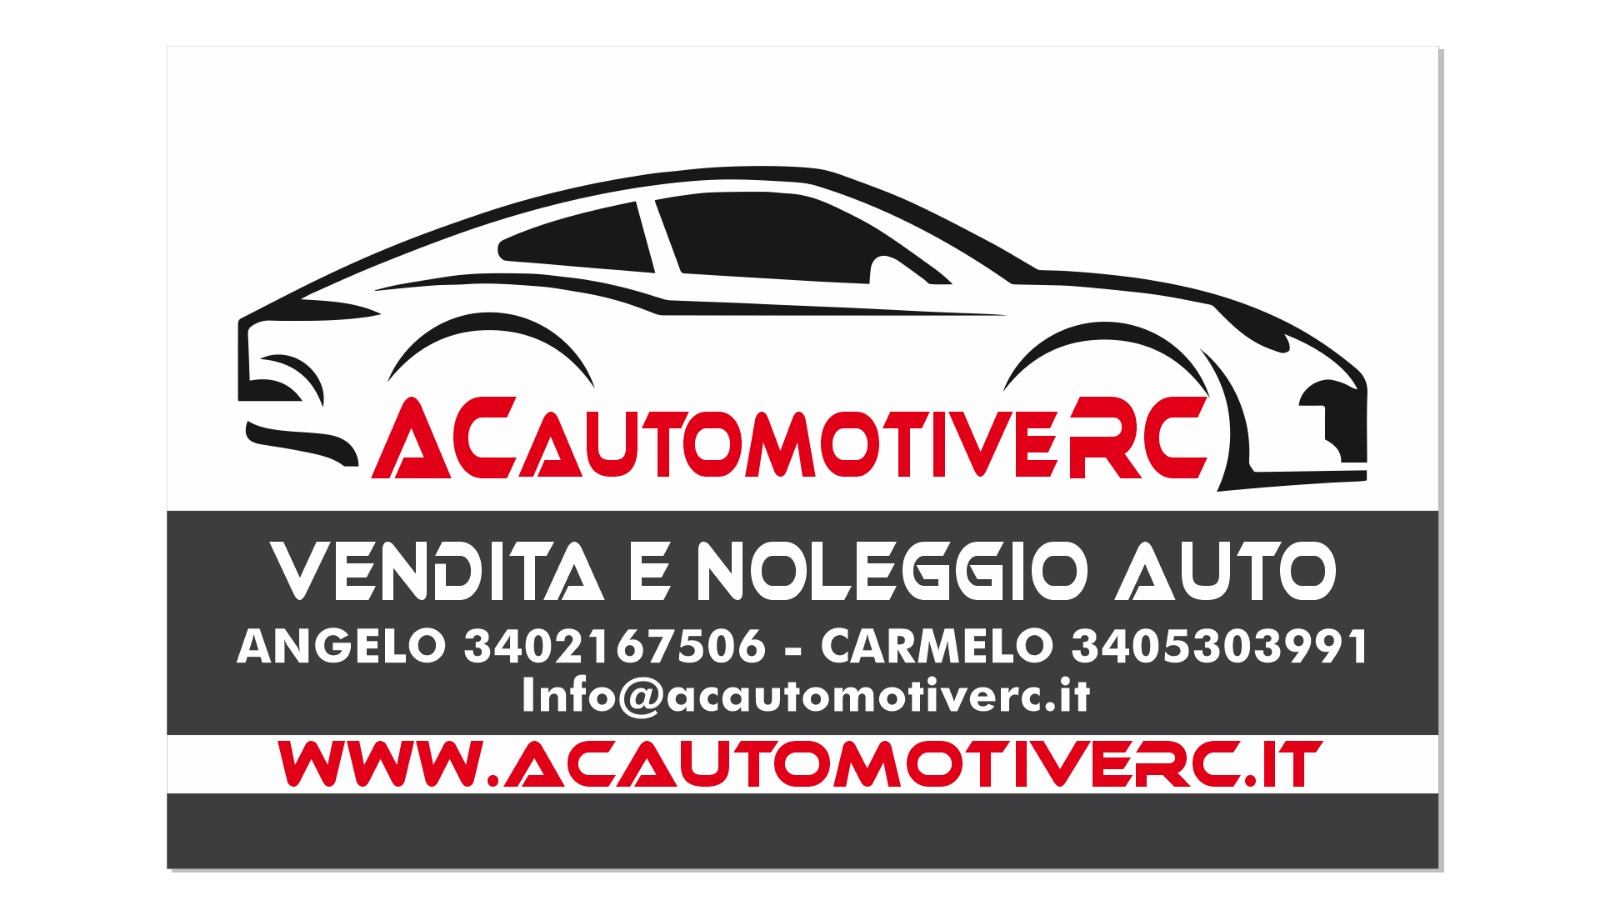 AC Automotive RC